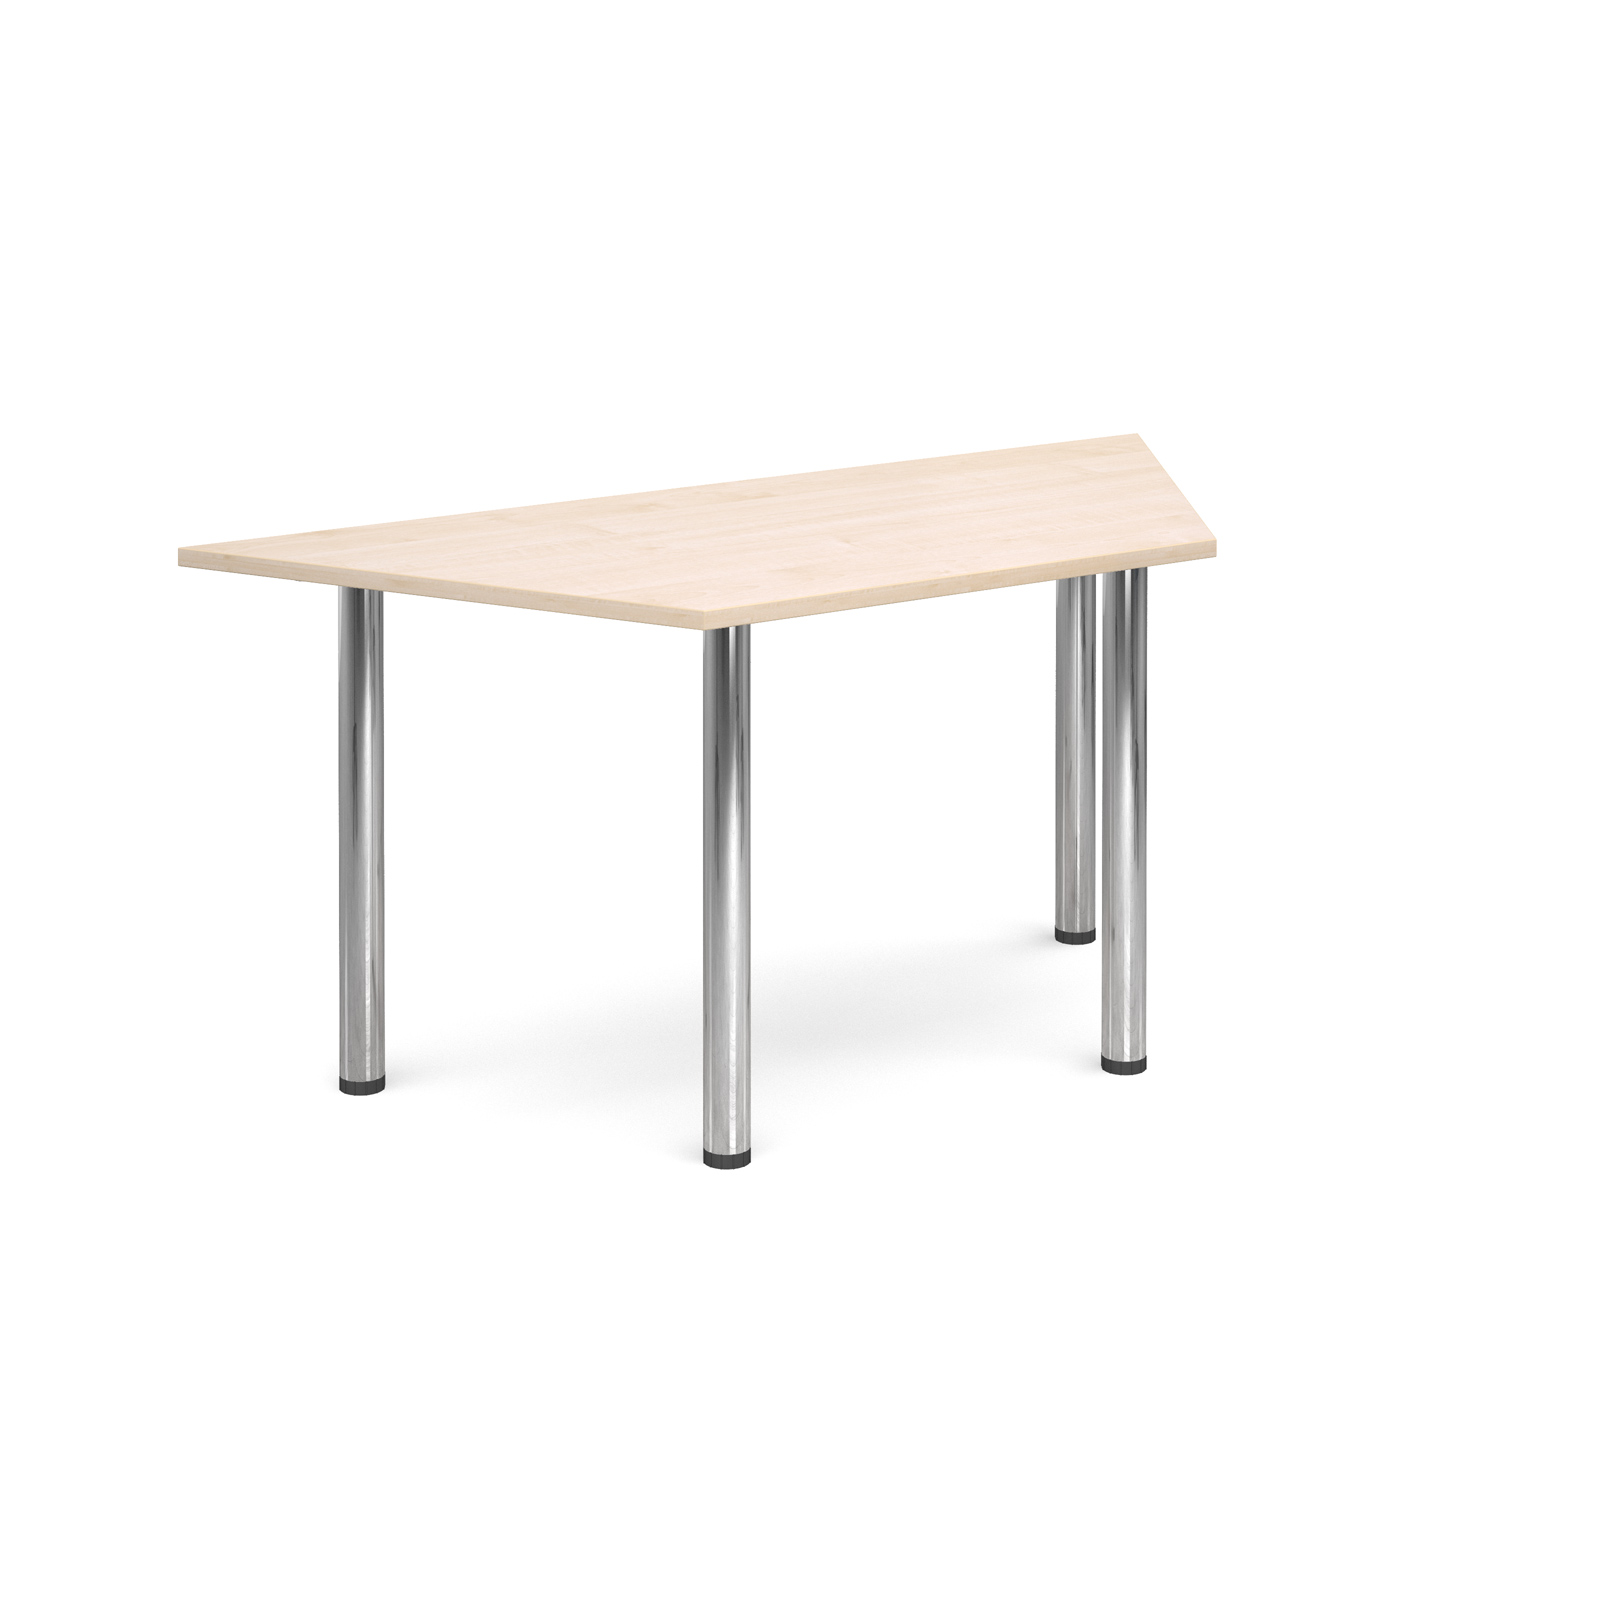 Trapezoidal deluxe chrome radial leg table 1600mm x 800mm - maple